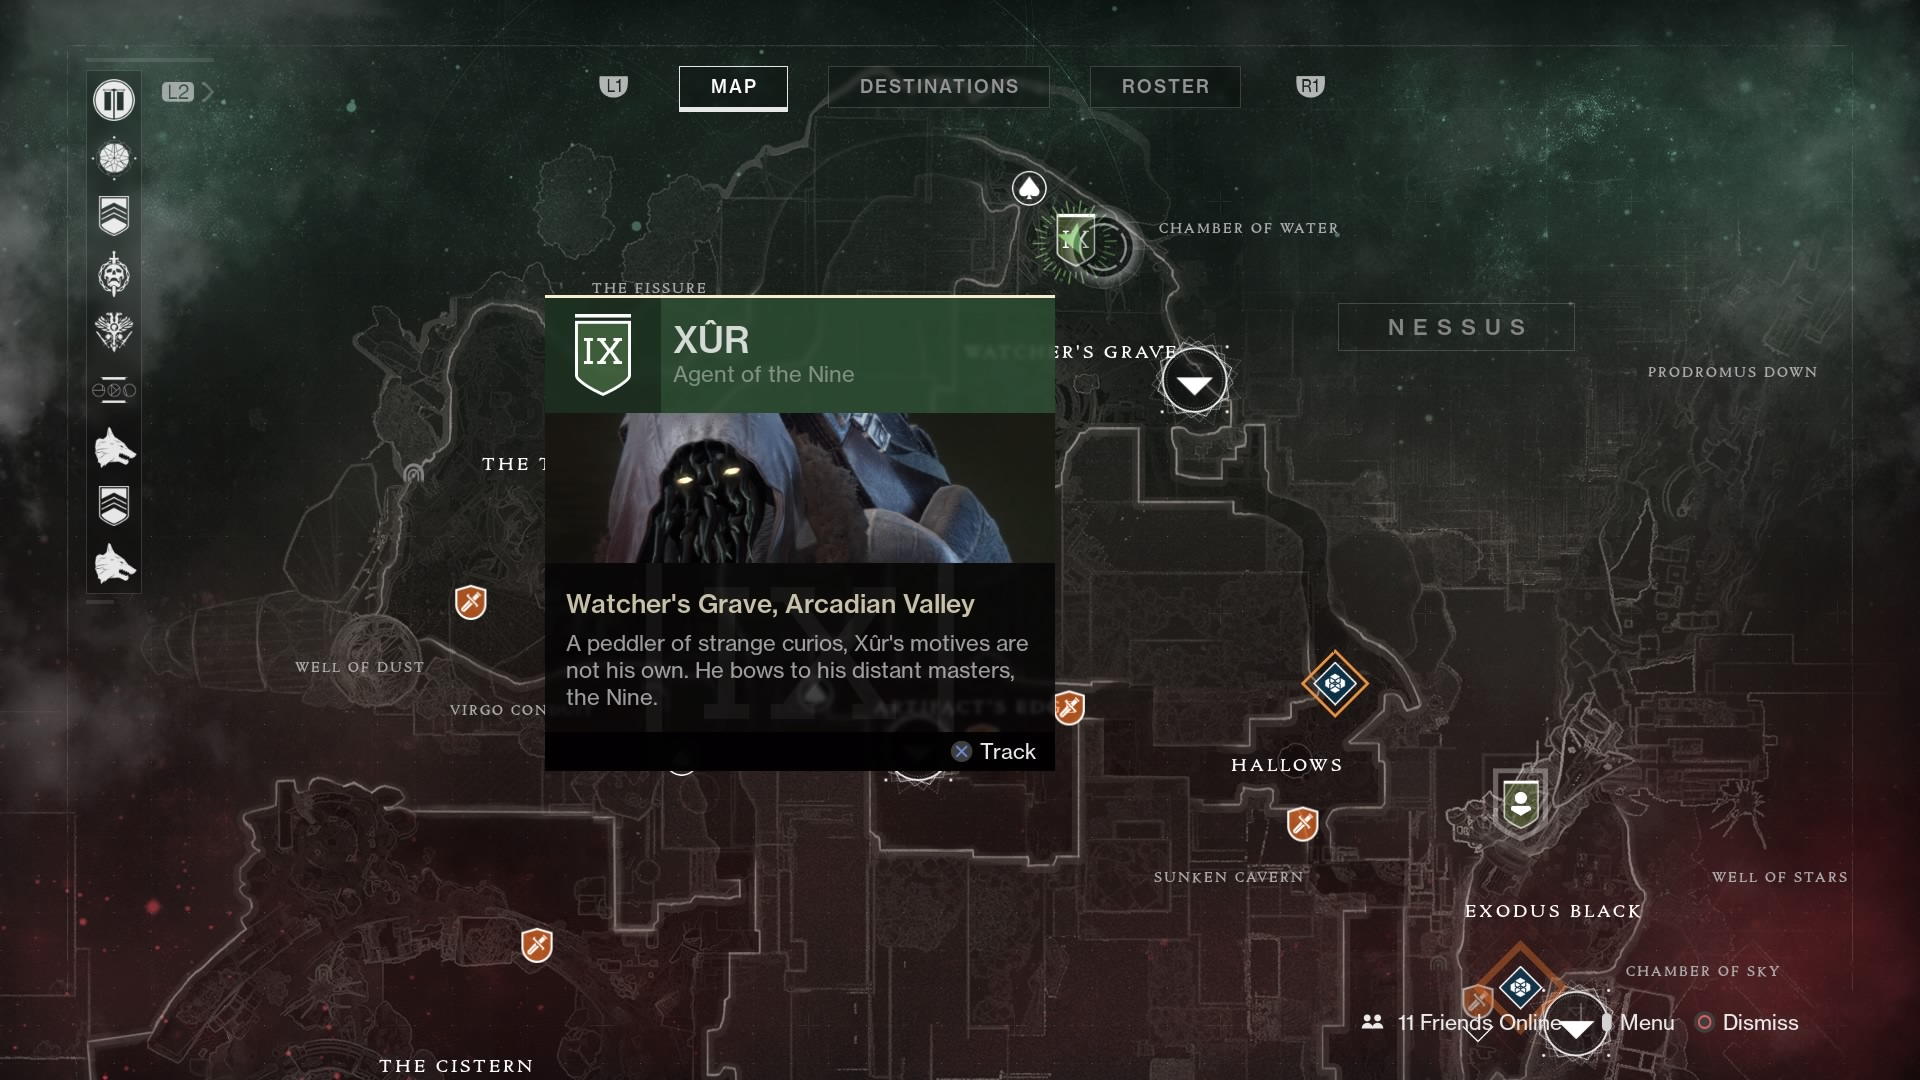 Destiny 2 Xur Map Nessus